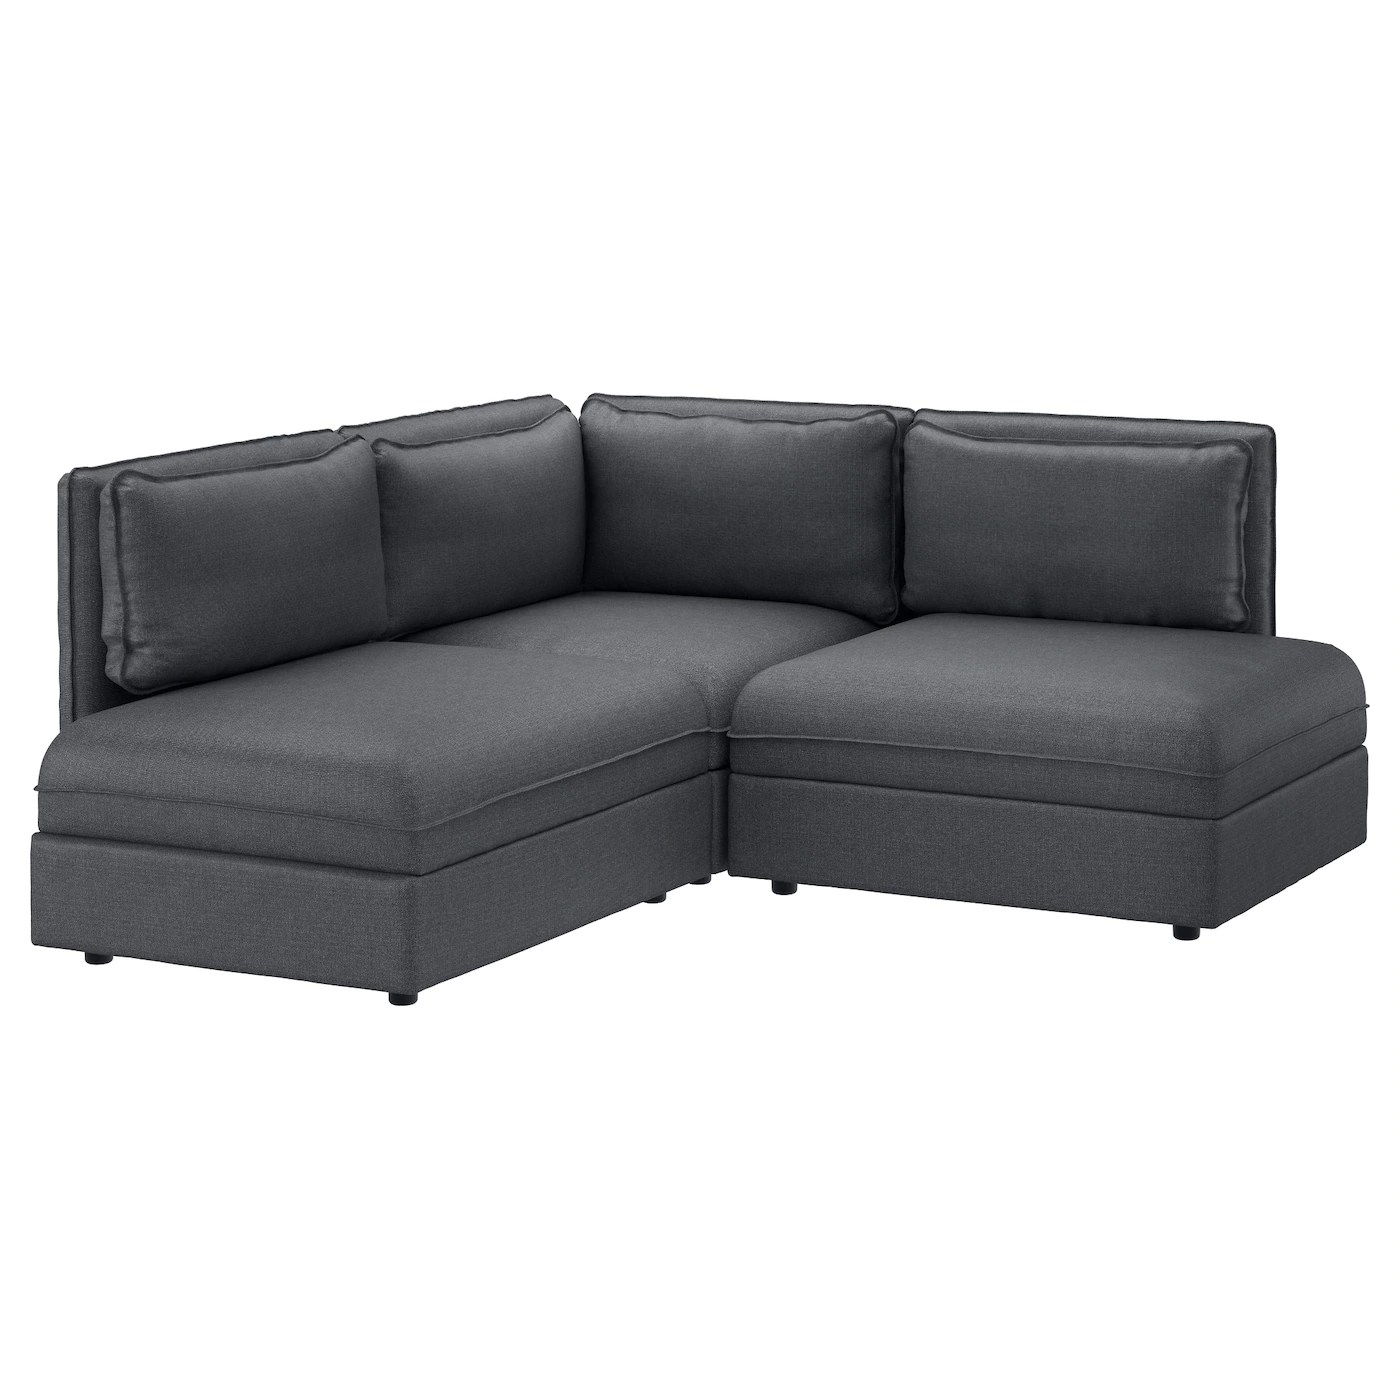 Big Sofa Petrol Fabric Sofas Ikea